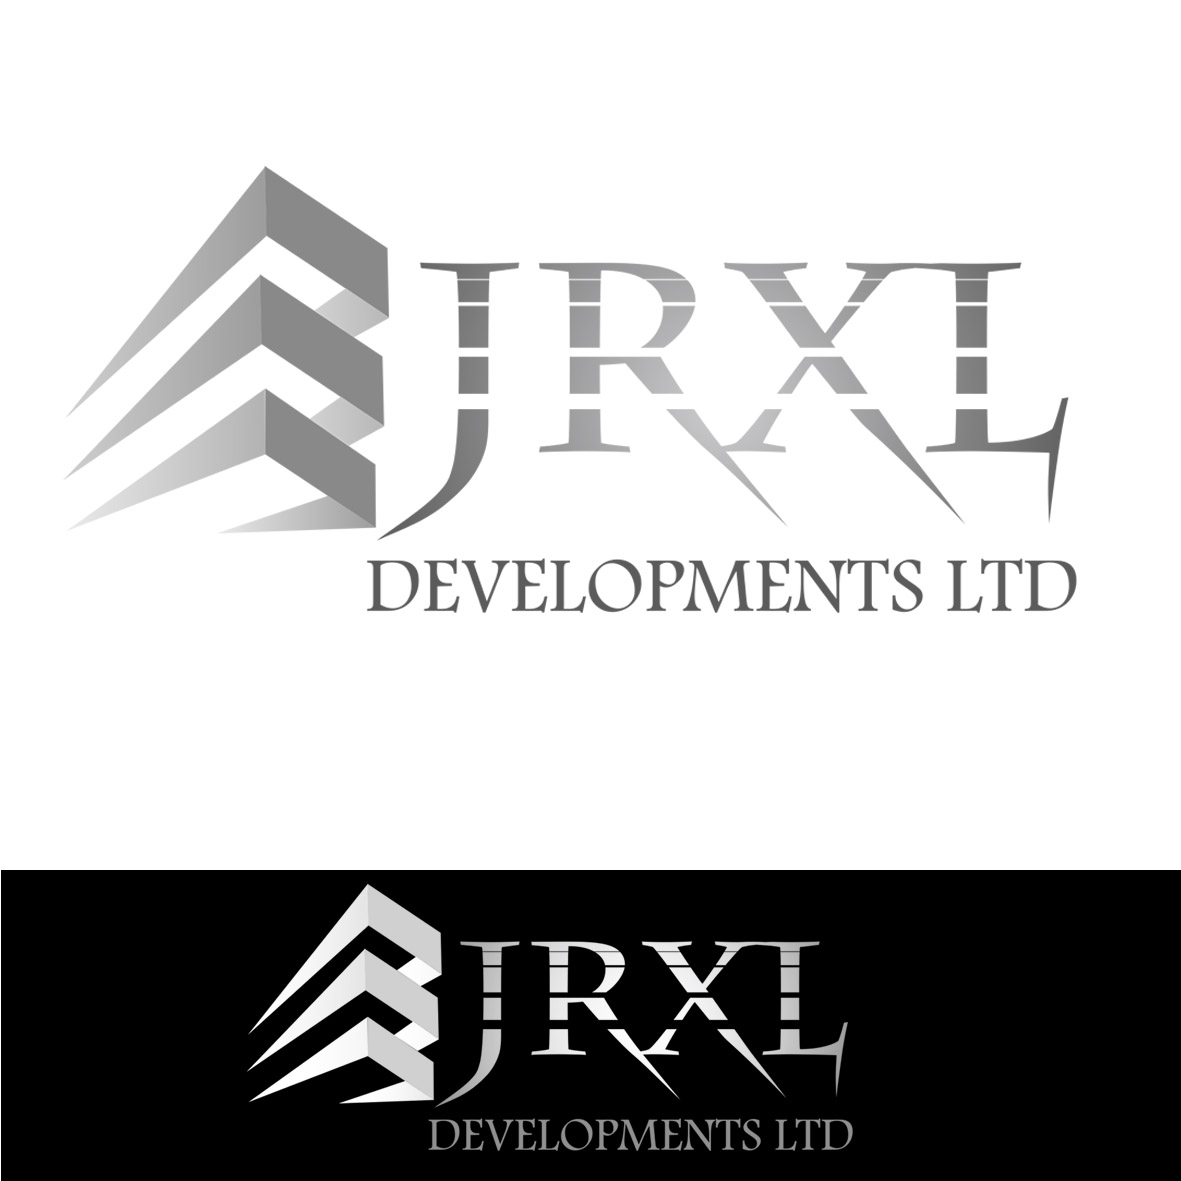 Logo Design by Marieta Naumova - Entry No. 30 in the Logo Design Contest JRXL DEVELOPMENTS LTD Logo Design.